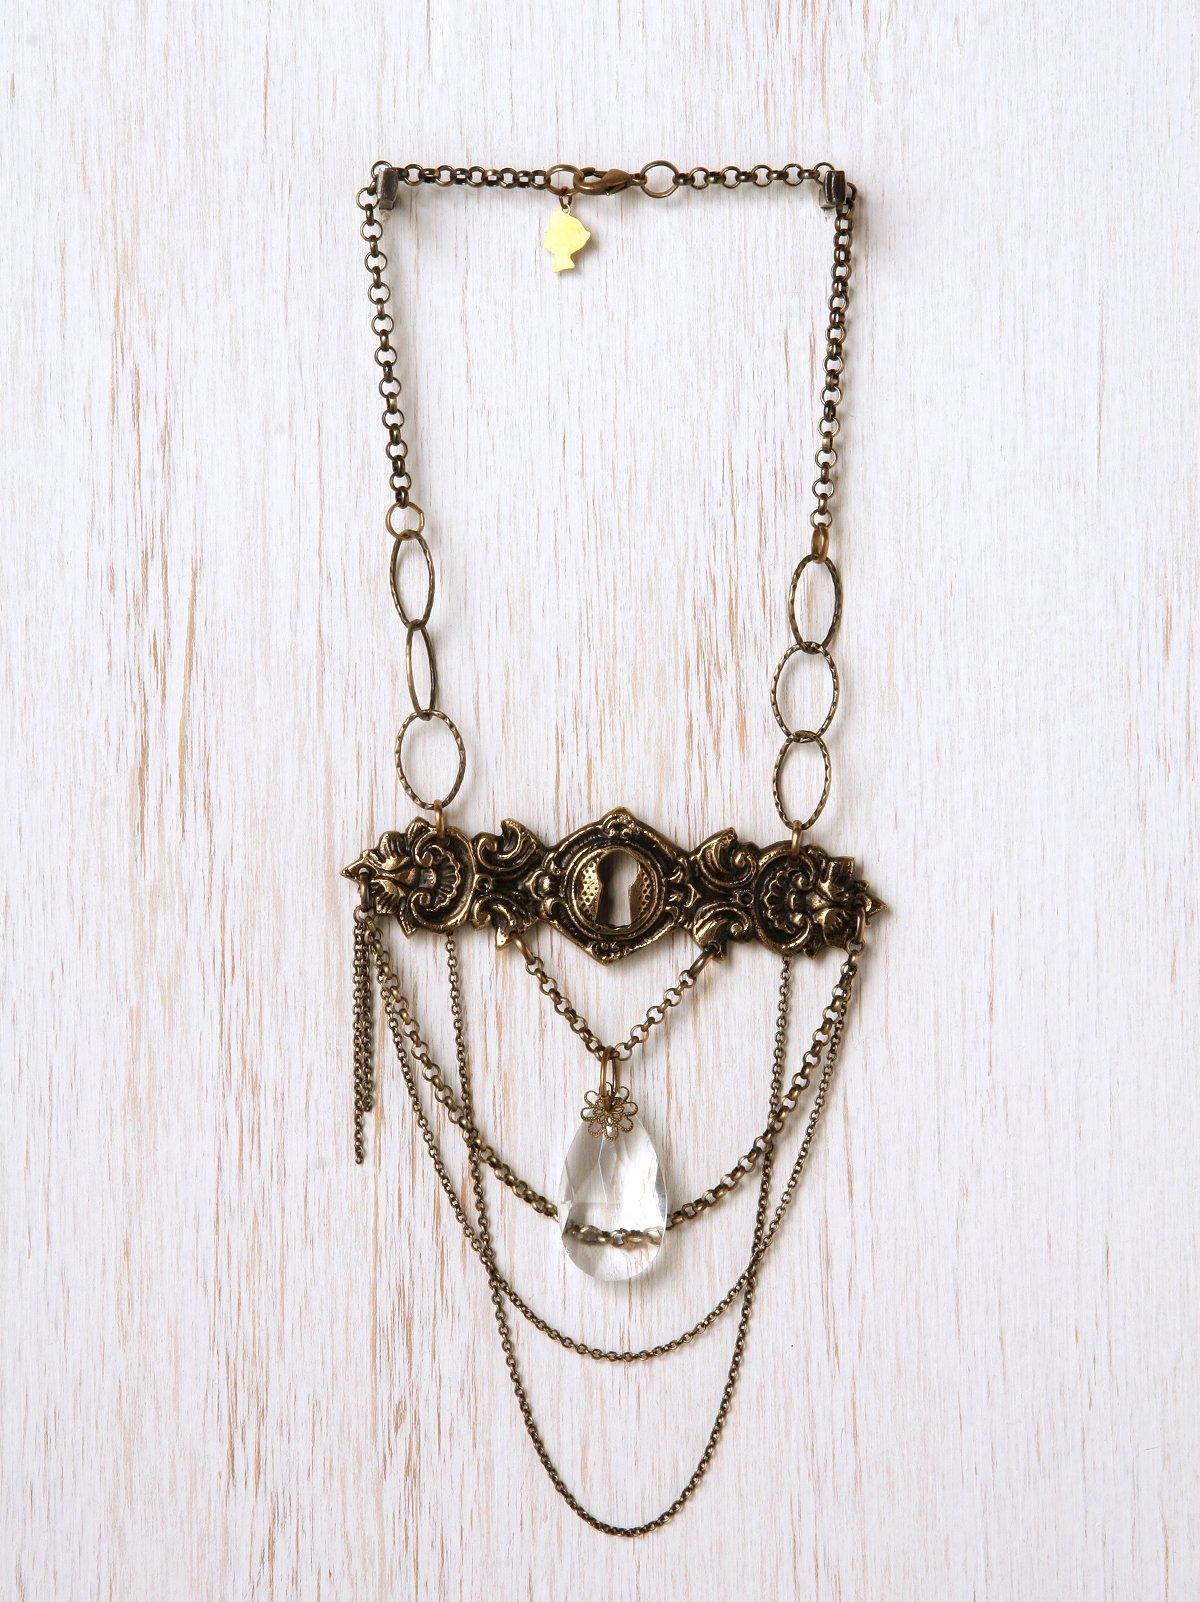 Vintage Lock & Crystal One Of A Kind Necklace